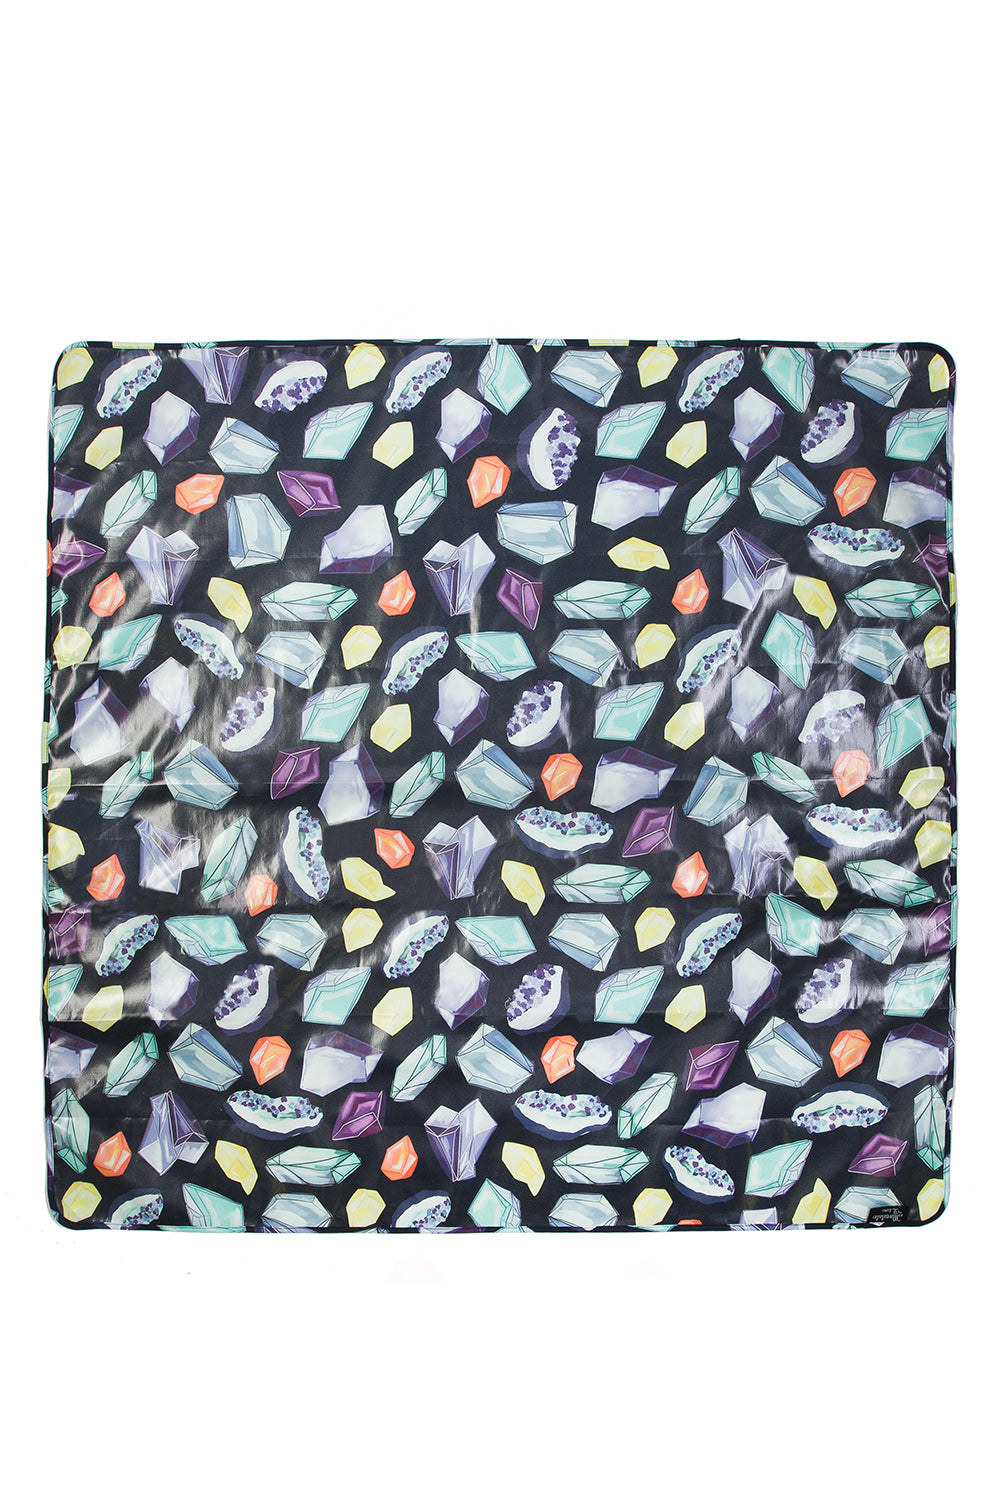 Crystals Splat Mat